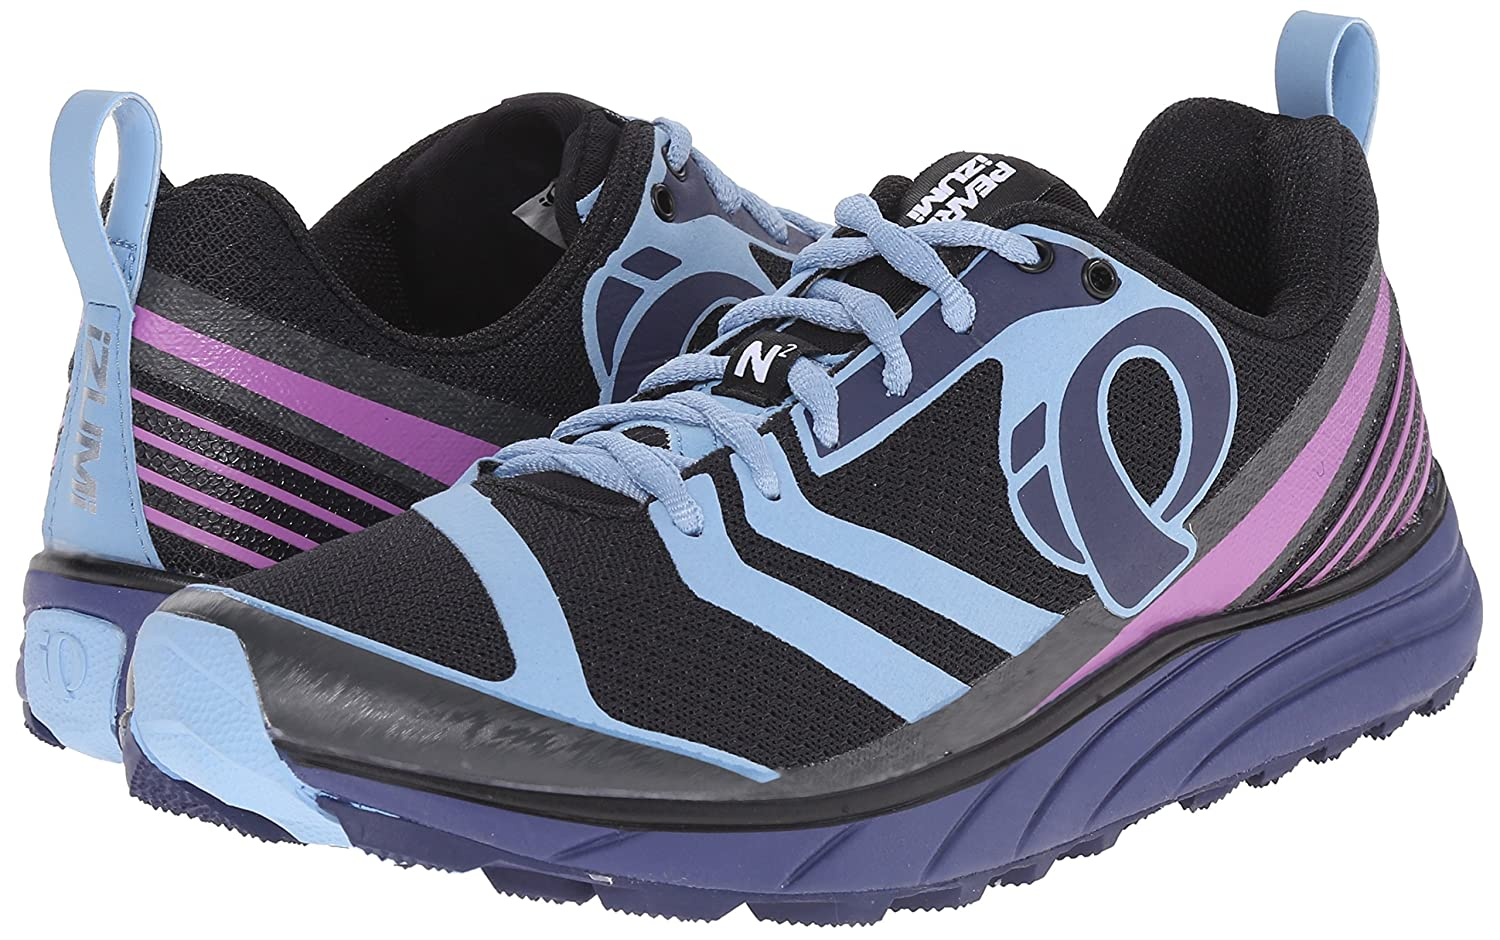 Pearl iZUMi Women's EM Trail N2 v2 Running Shoe B011SGCH28 5 B(M) US|Black/Deep Indigo